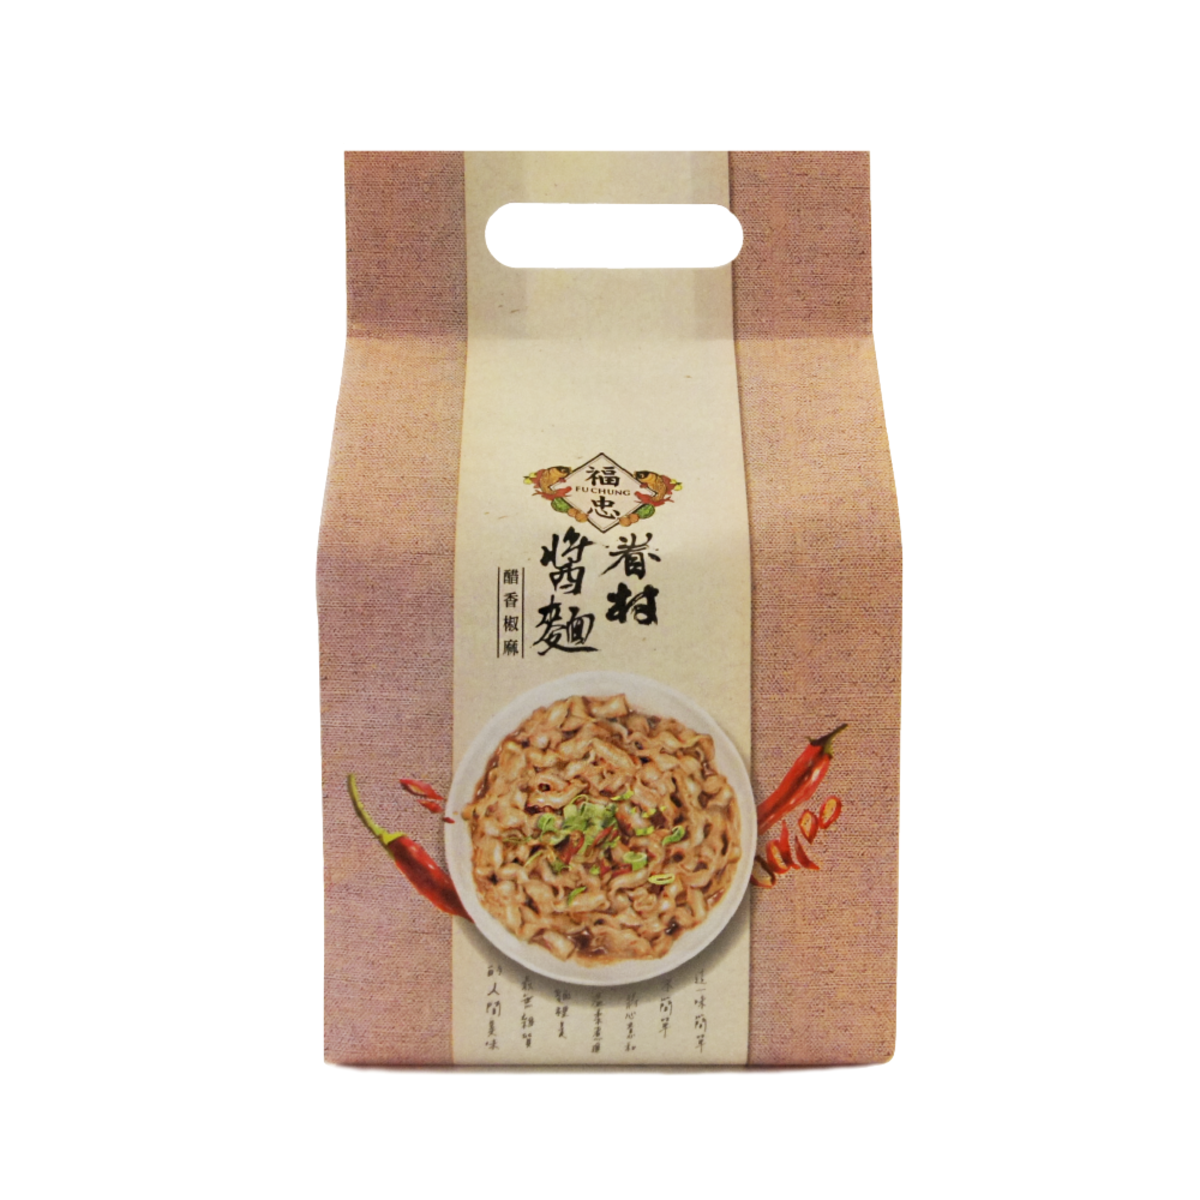 Village dry noodles with sauce - Spicy Sichuan Pepper with Vinegar